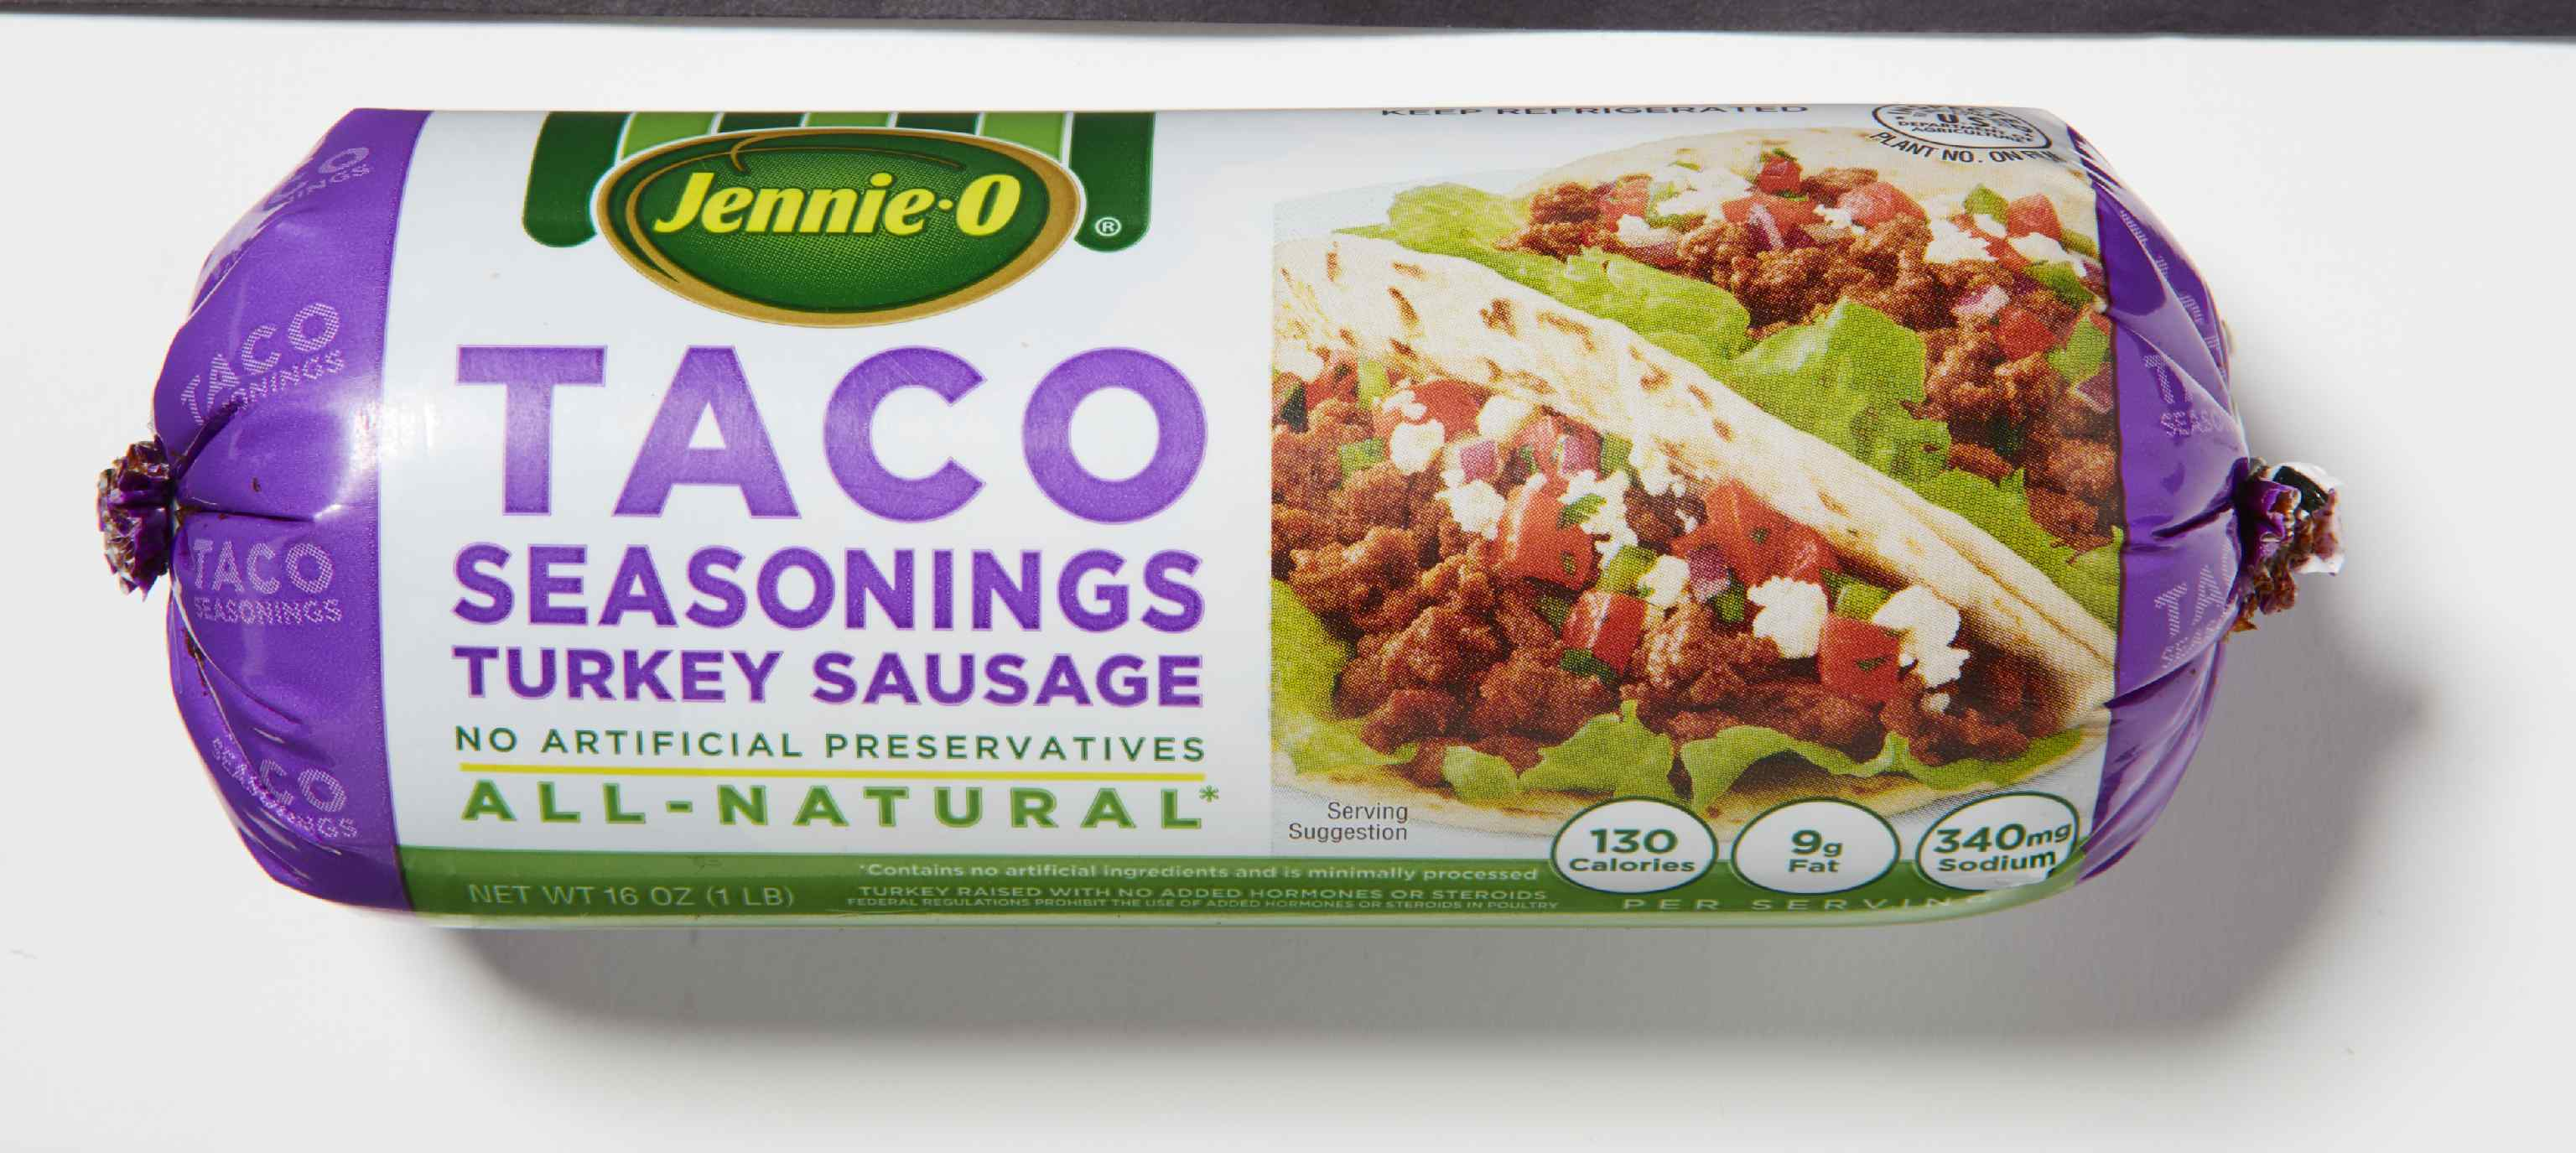 Jennie O Taco Seasonings Turkey Sausage